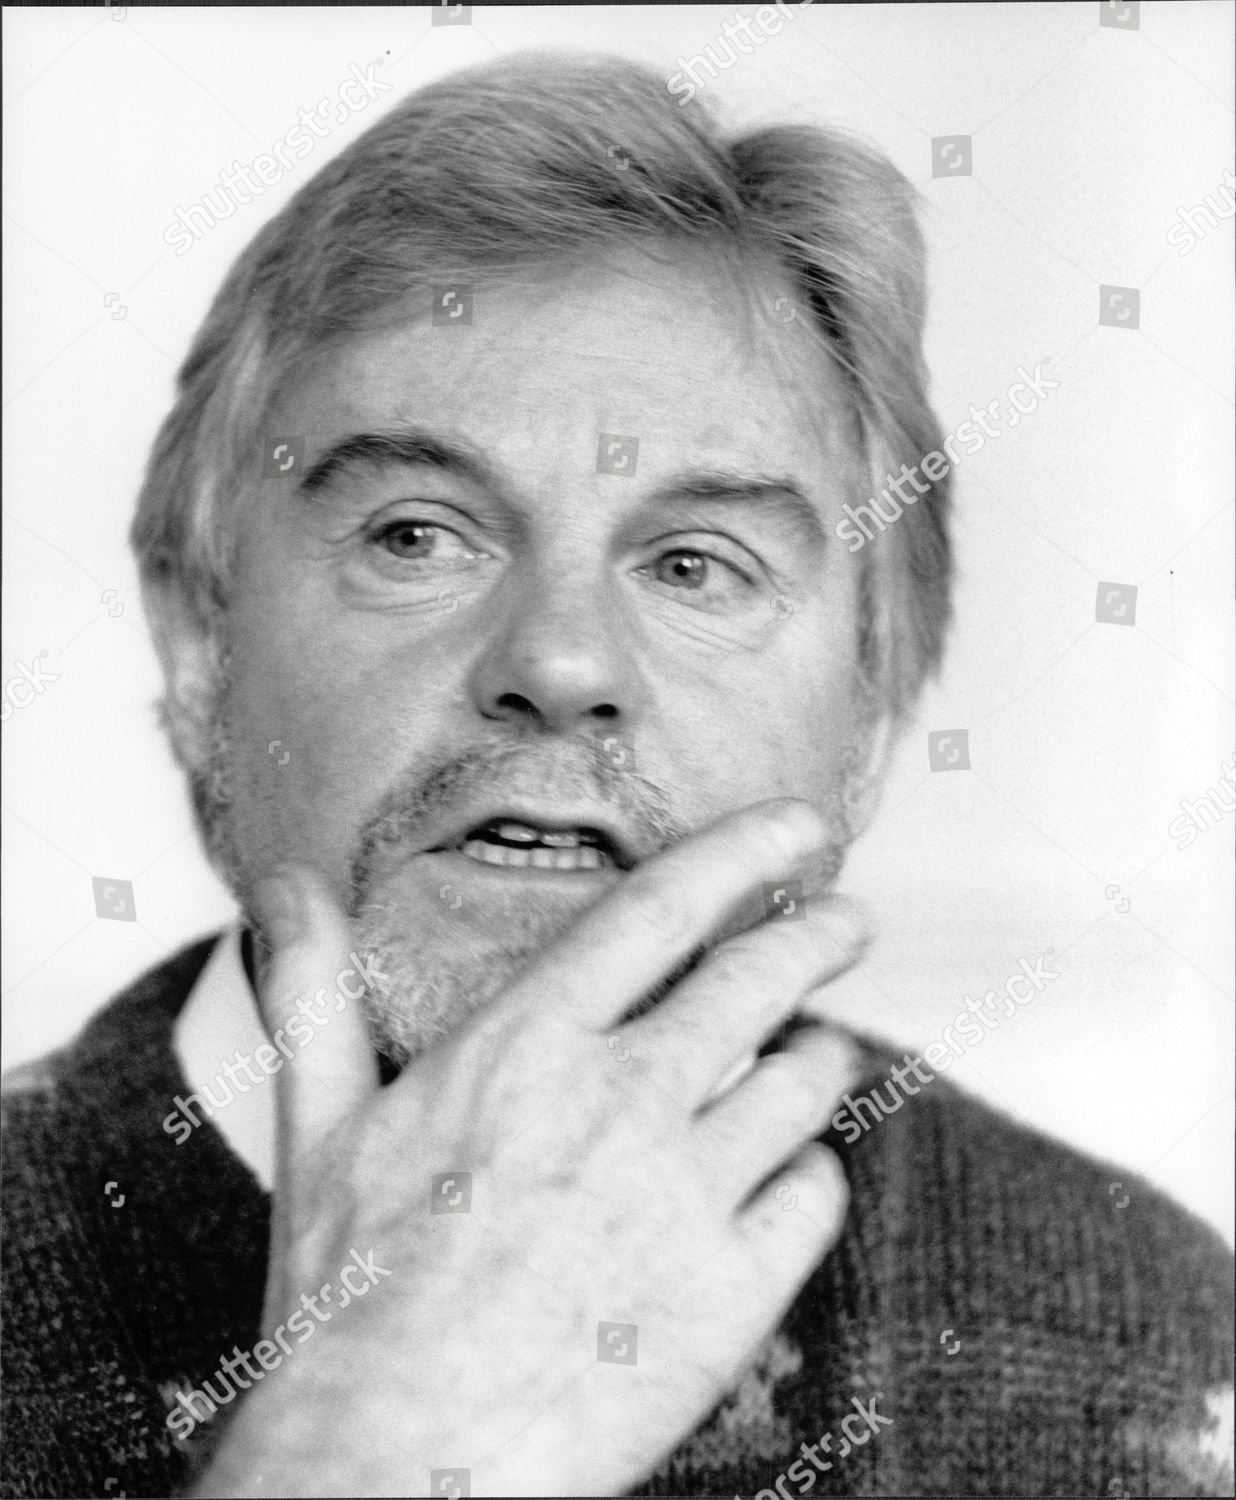 Derek Jacobi (born 1938)